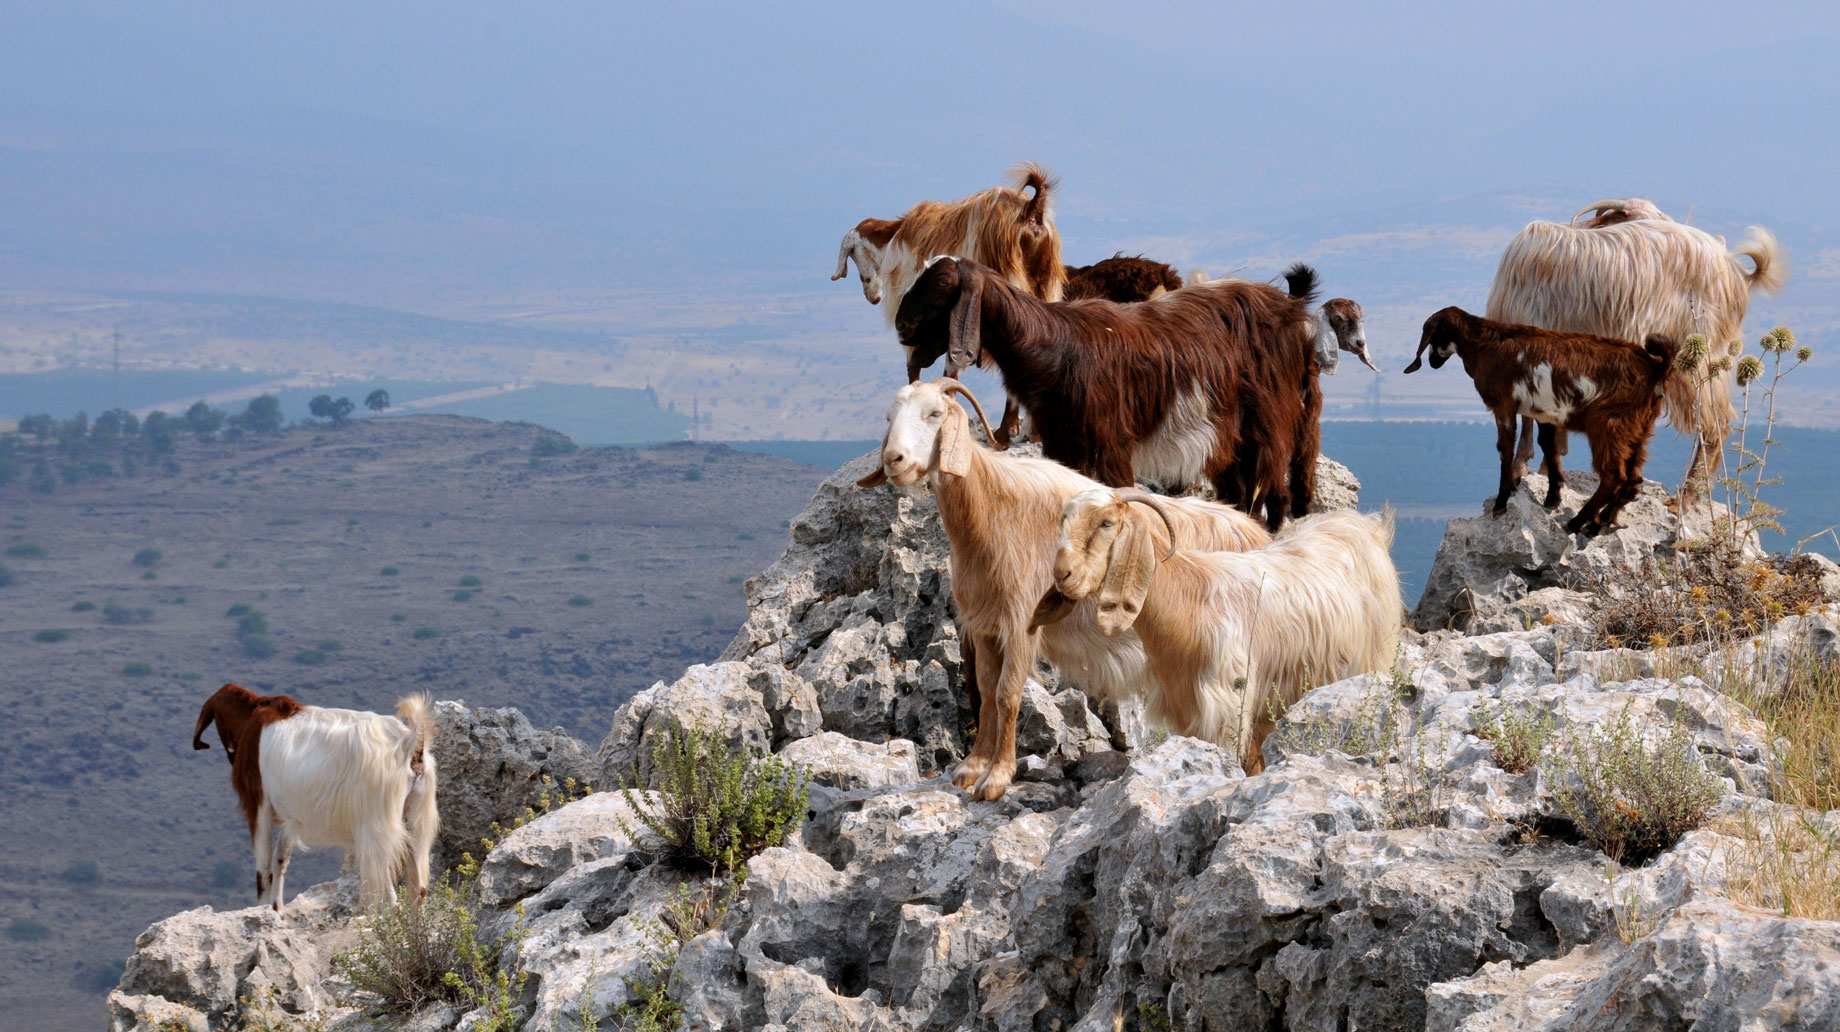 goats in Israel